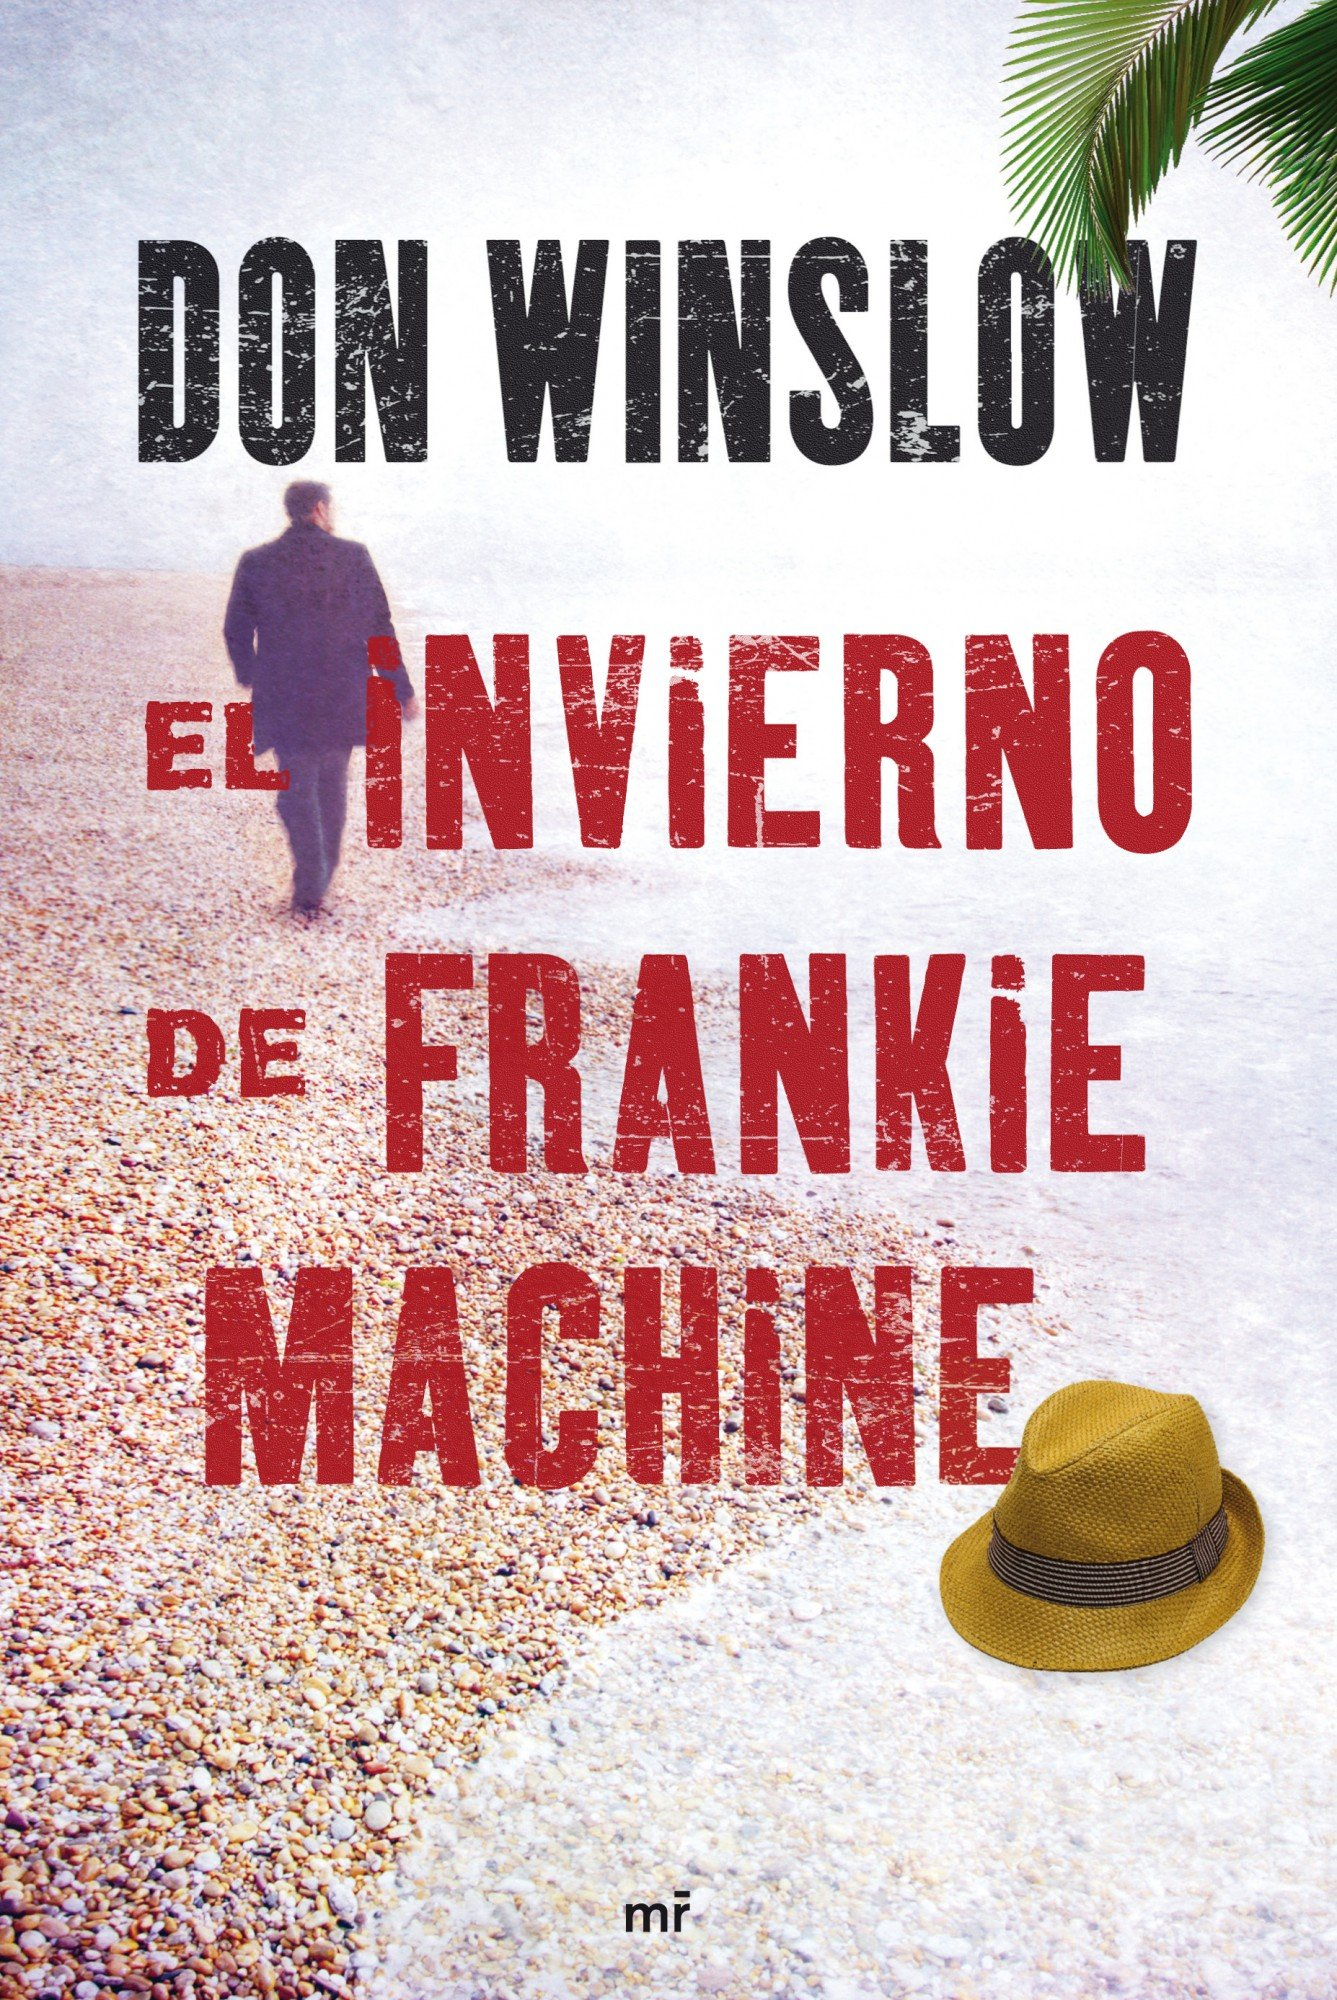 El invierno de Frankie Machine (Spanish Edition): Don Winslow: 9788427036437: Amazon.com: Books